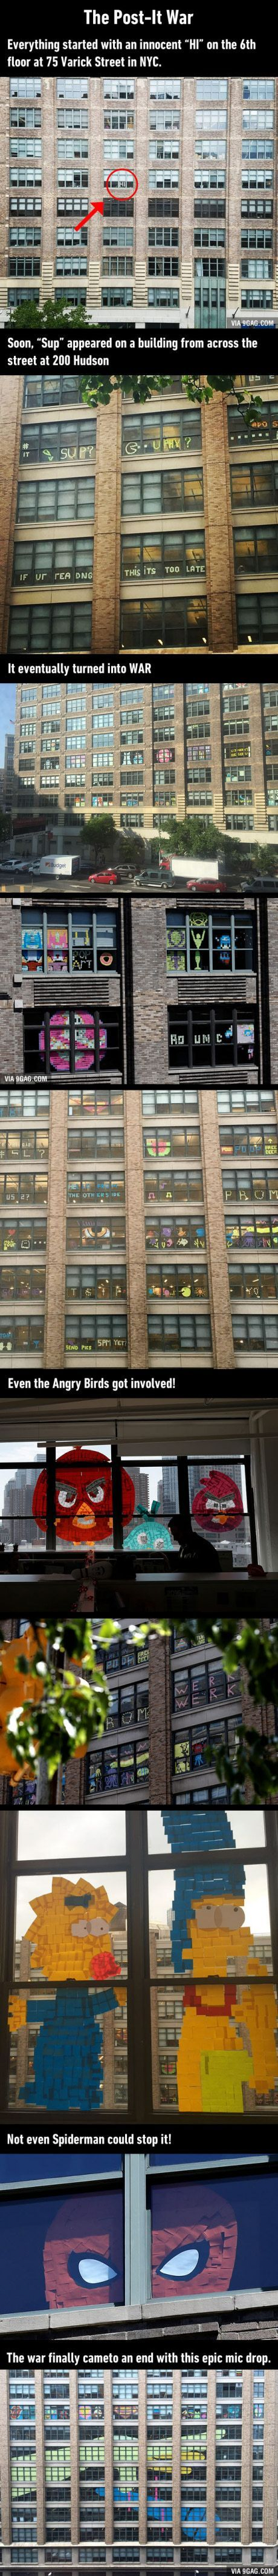 Post-It War Between Two Office Buildings Ends With Epic Finale http://ibeebz.com